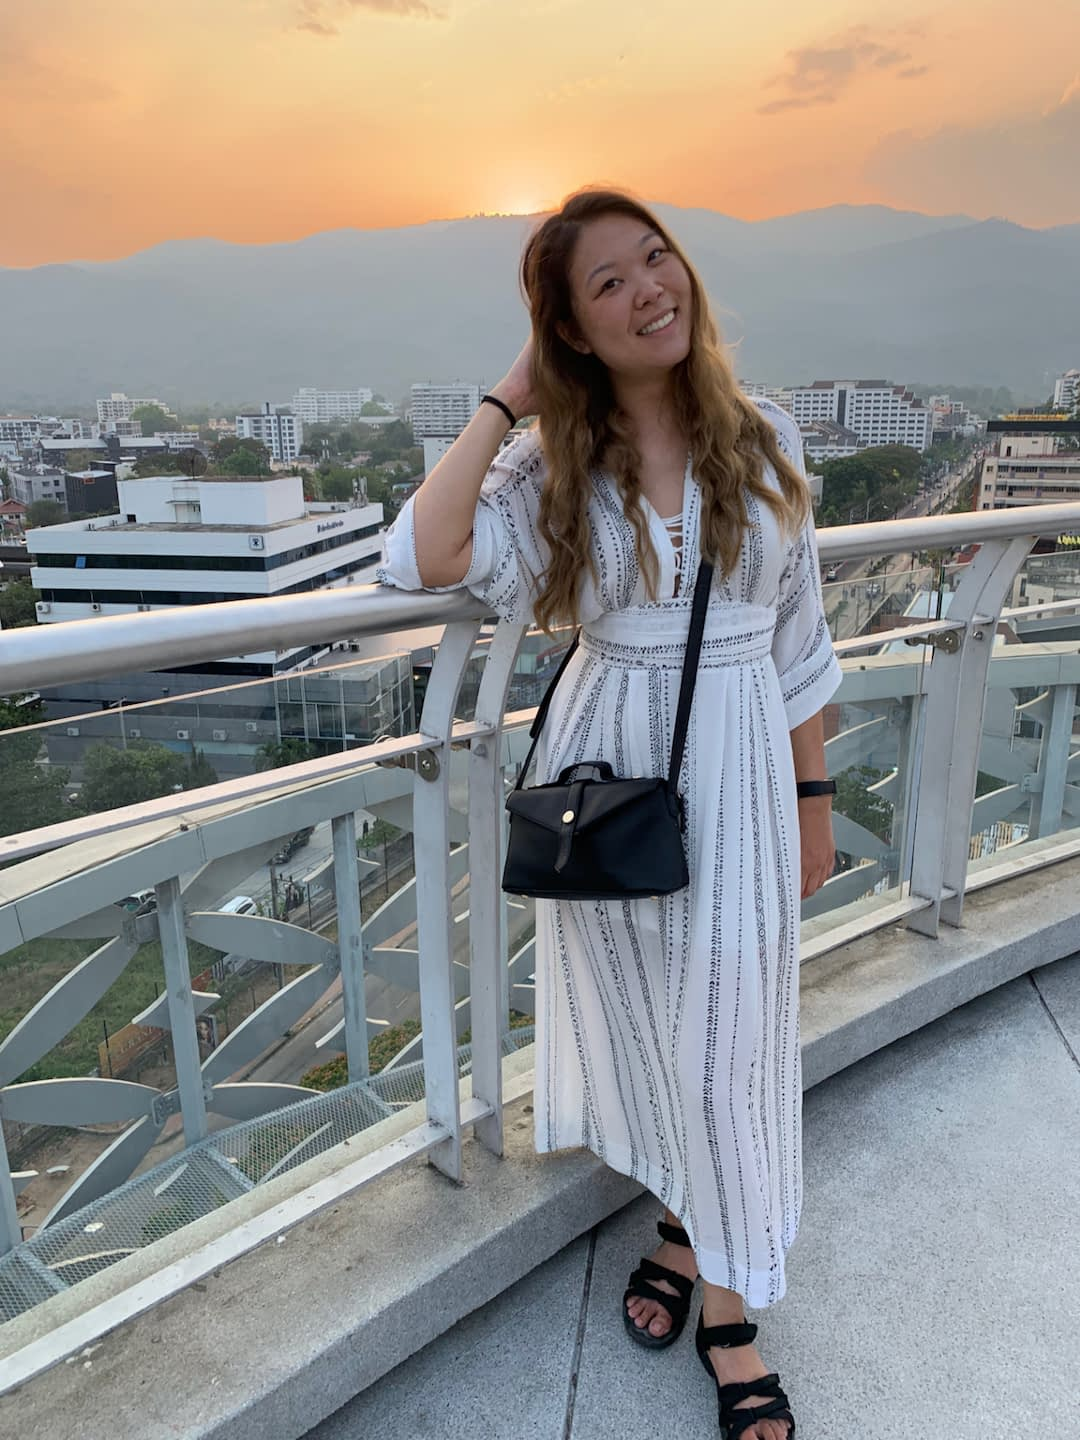 Girl wearing a white dress, smiling with mountains and an orange sunset behind her